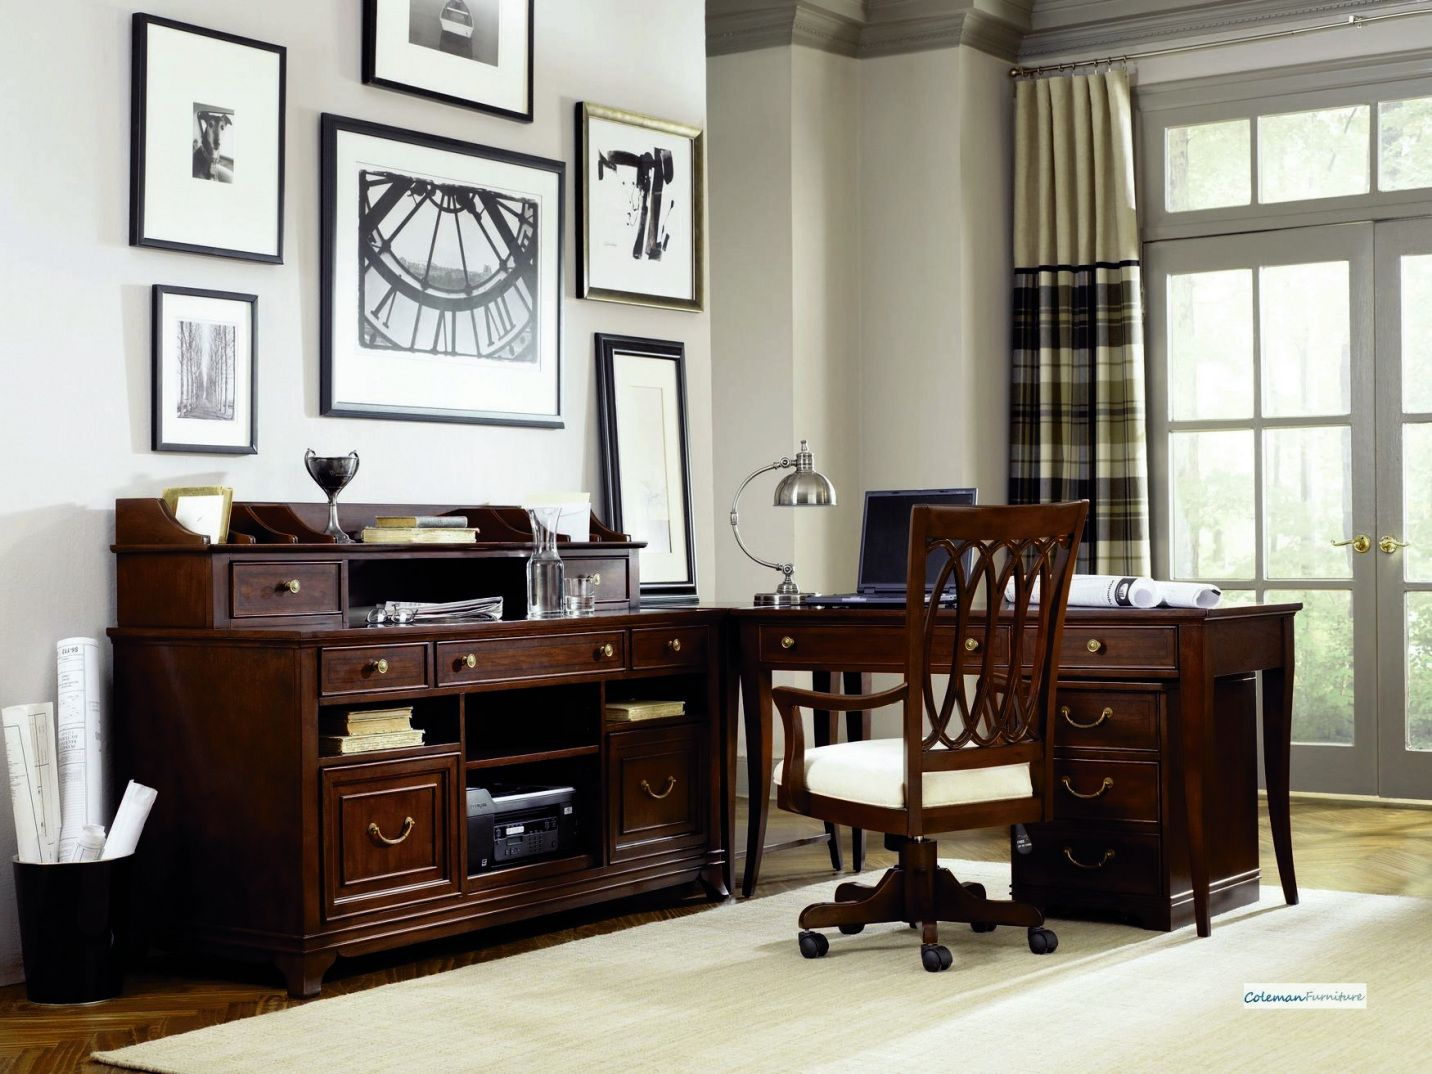 pottery barn office desk. Office Desk Pottery Barn - Country Home Furniture Check More At Http:// I